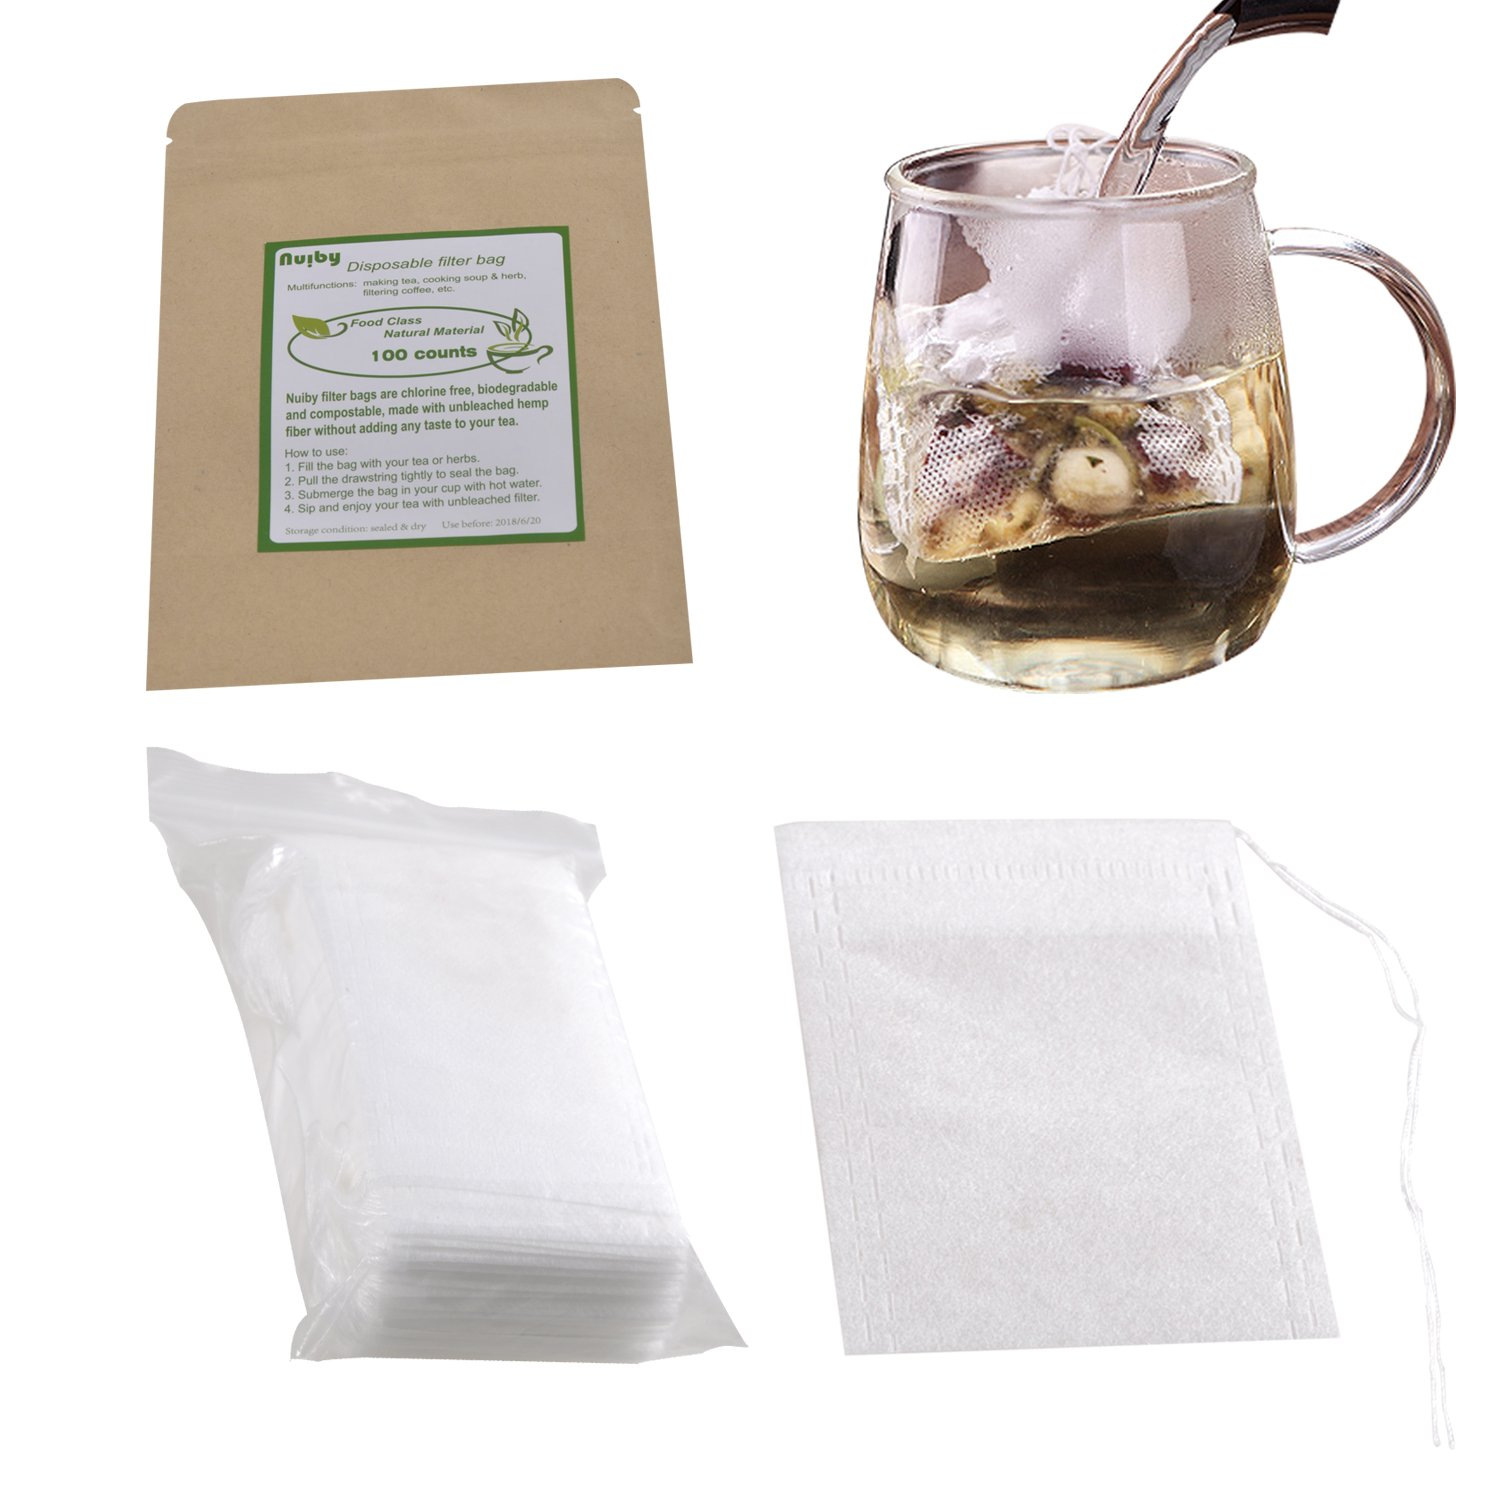 Tea Filter Bags, Unbleached 100% Natural Drawstring Empty tea bags for Loose, Herbal, Green & Weight Loss Tea - NUIBY Disposable Tea Infuser Bags - 1cup capacity, 100 counts (2.4in x 3.2in)